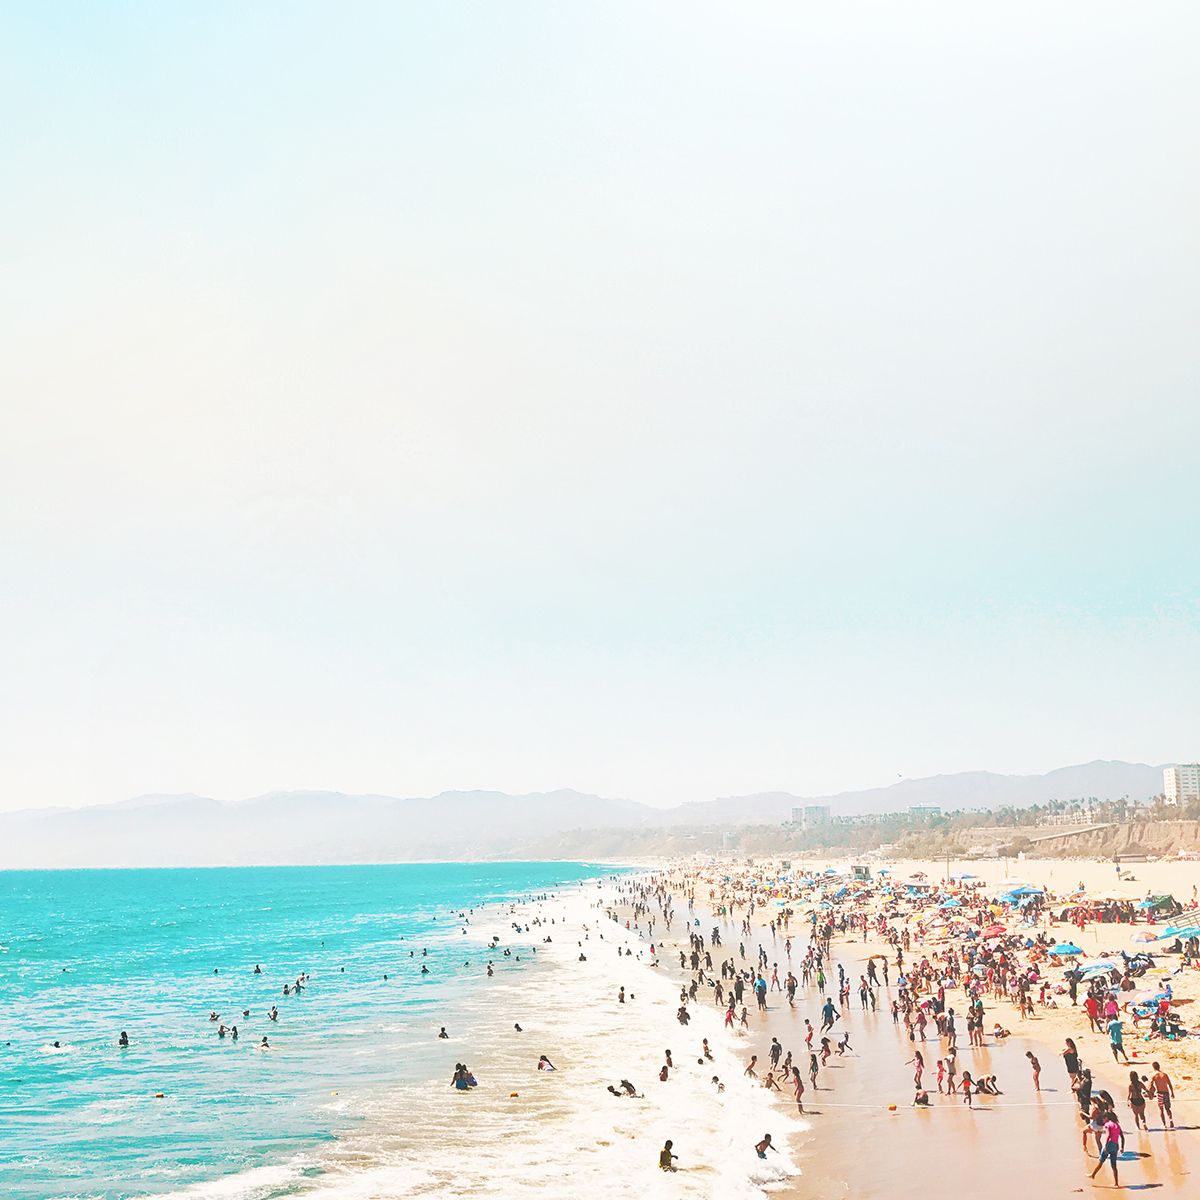 View of the beach from the Santa Monica Pier in Santa Monica, California.